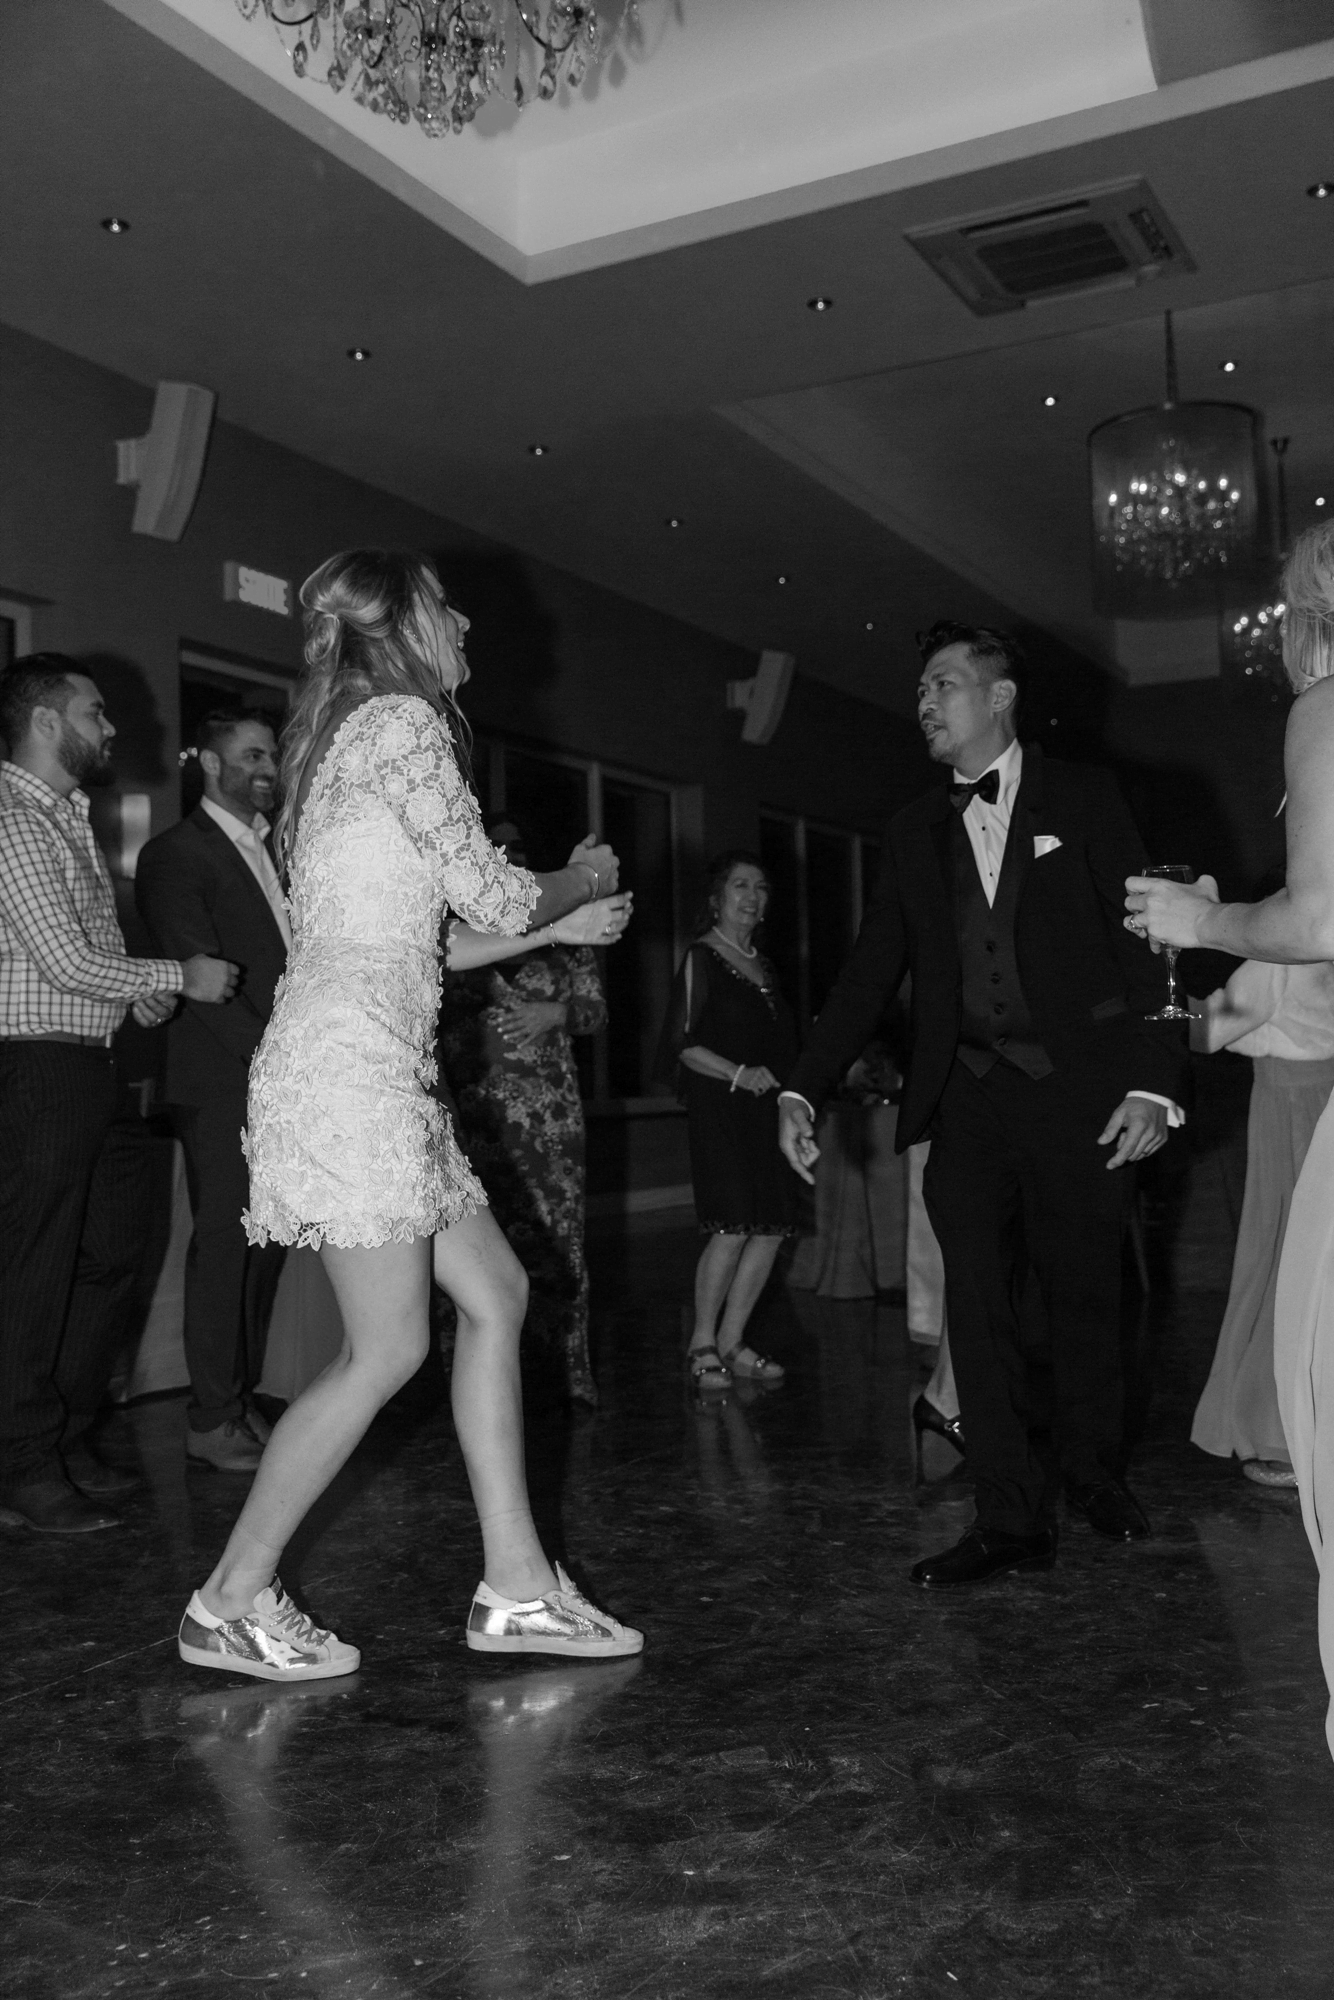 bride dancing in short white dress and sneakers